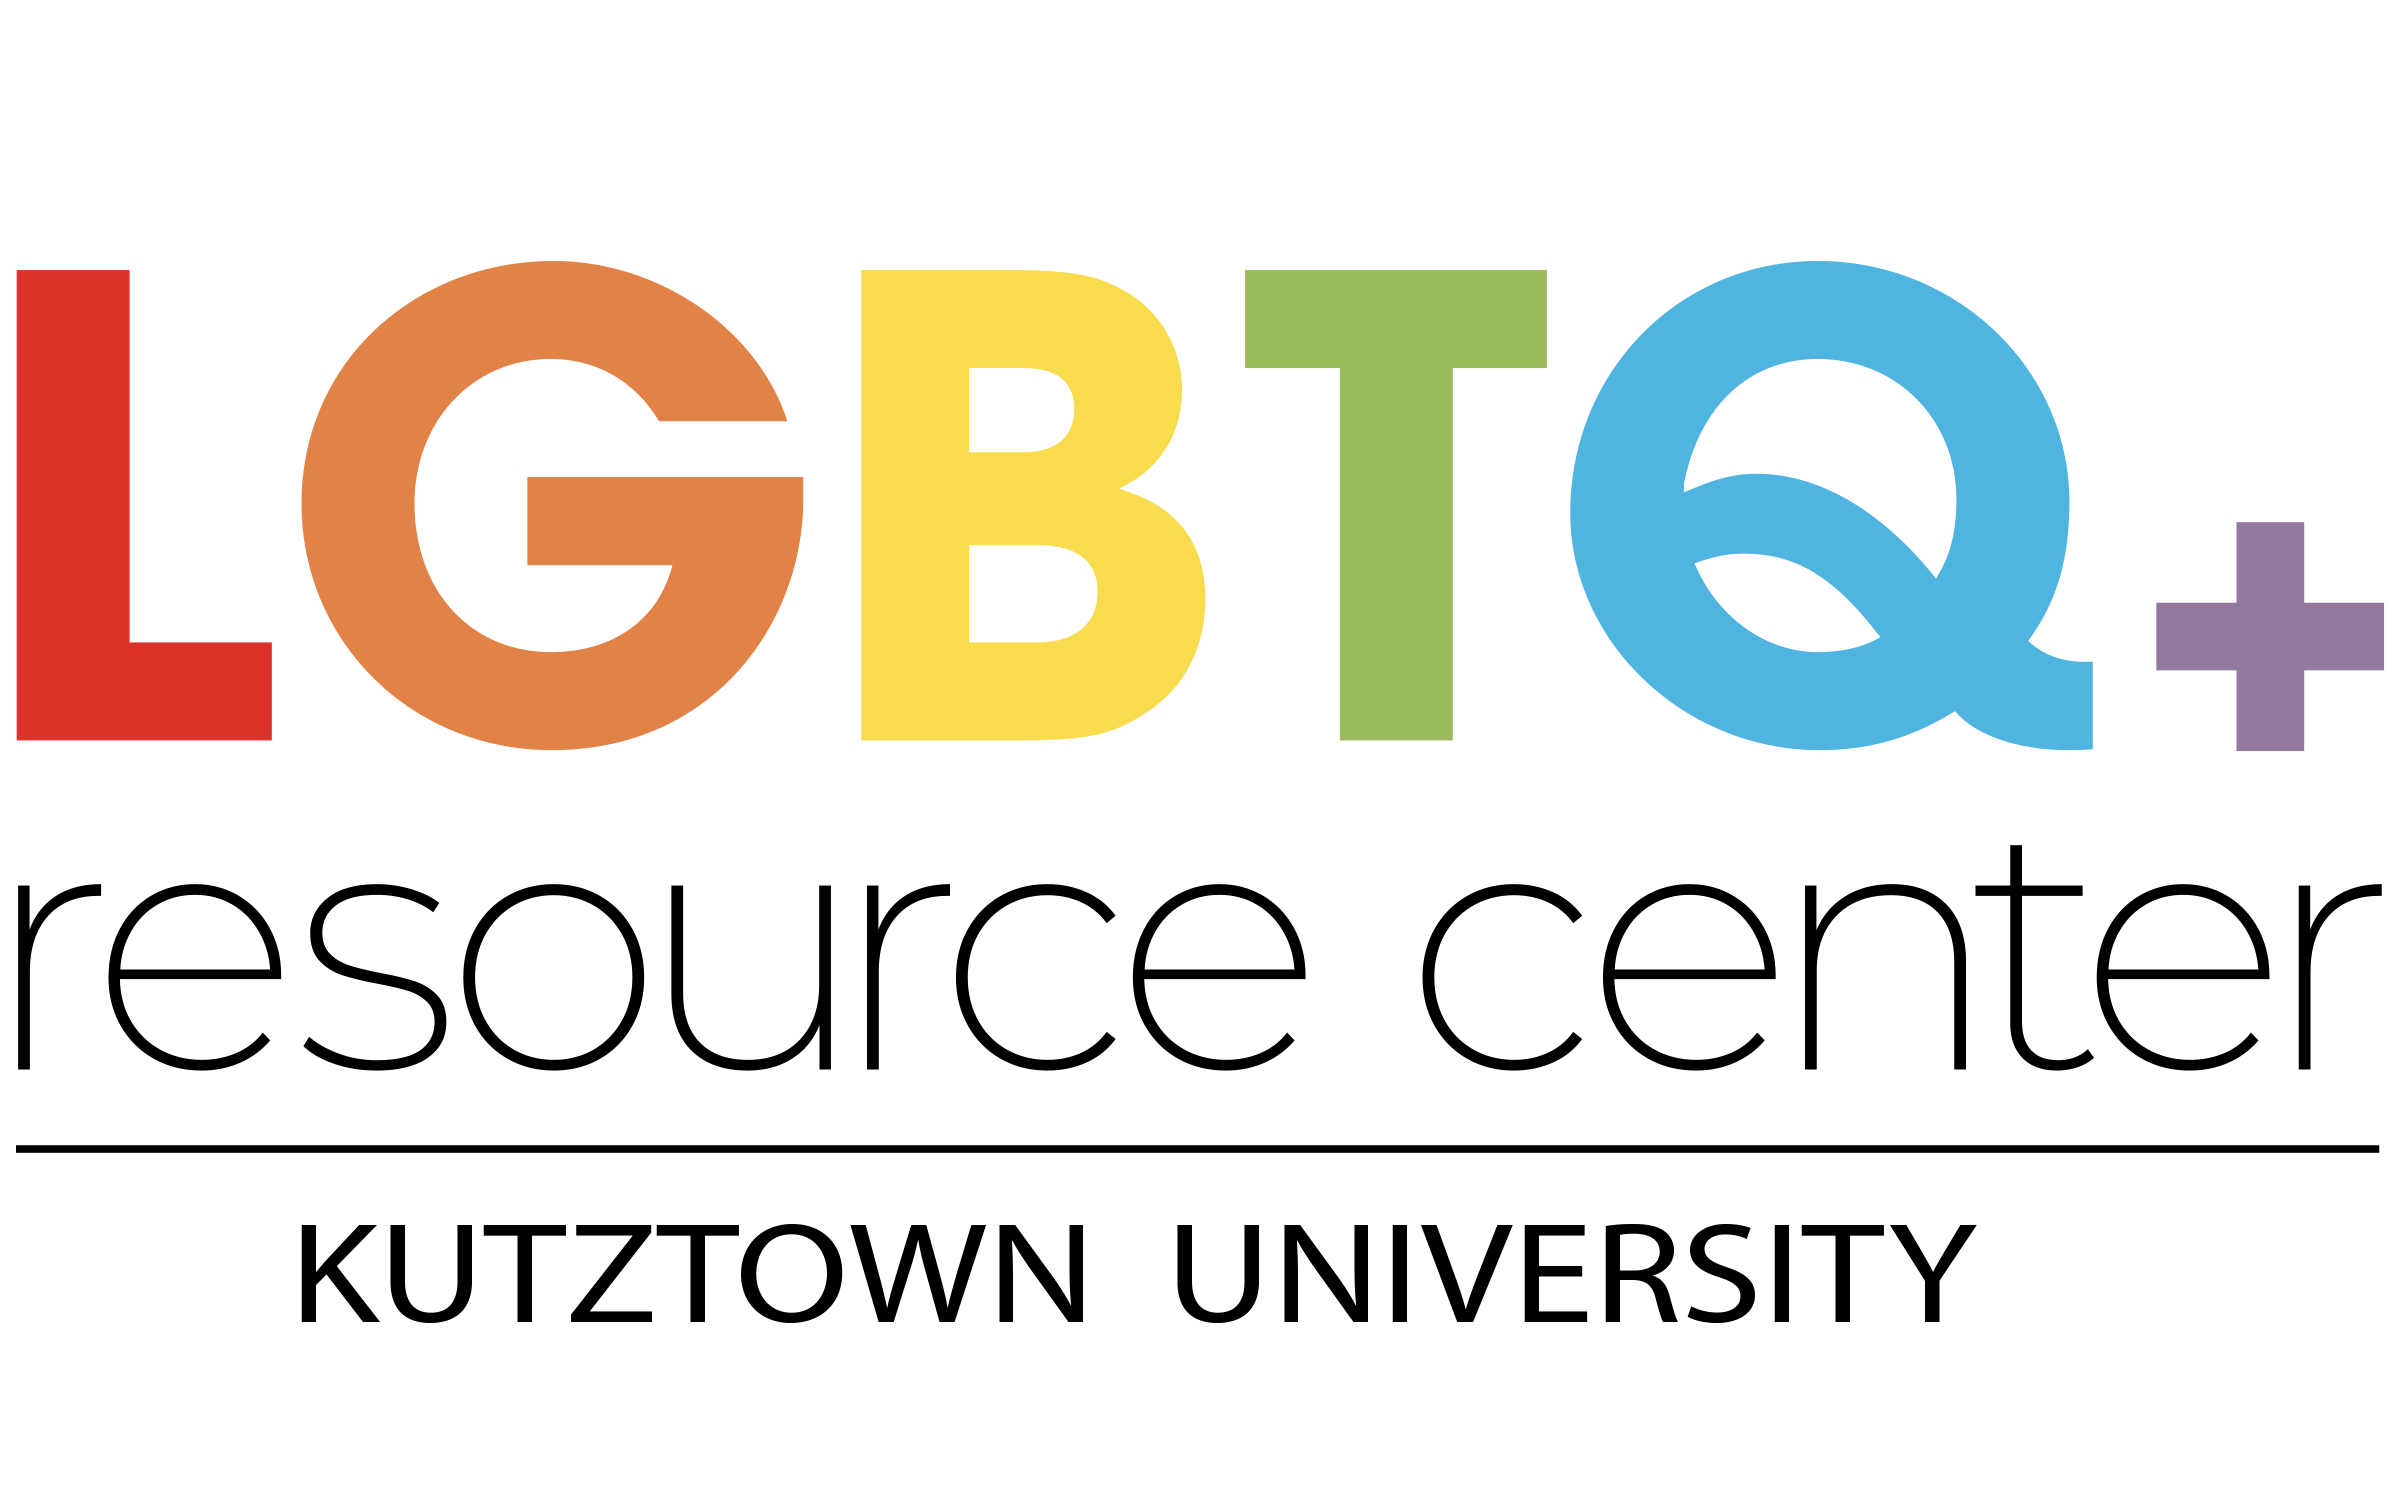 LGBTQ Resource Center logo in rainbow colors